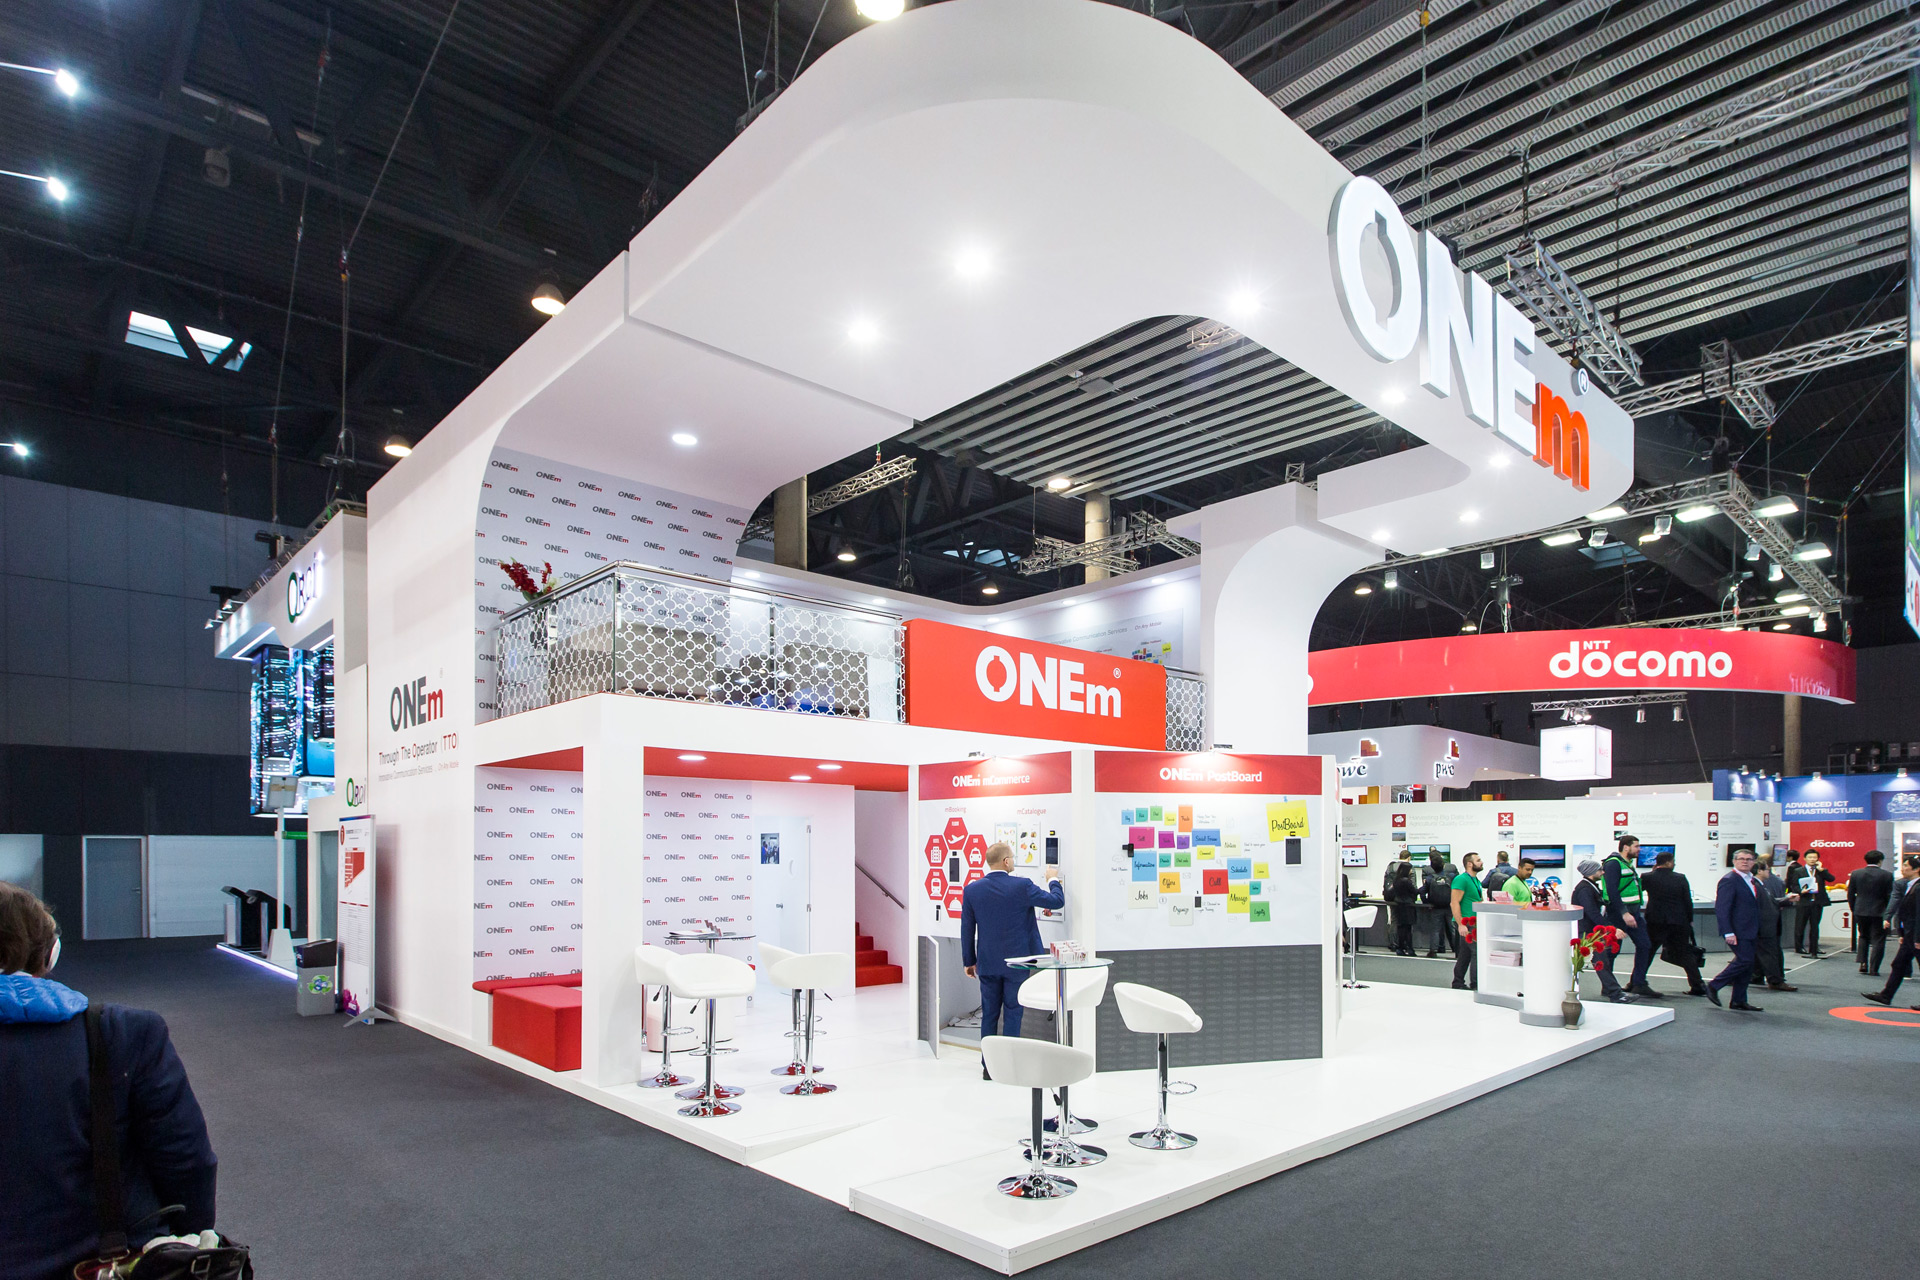 Exhibition Stand Design Barcelona : One m mwc barcelona pro expo exhibition stand